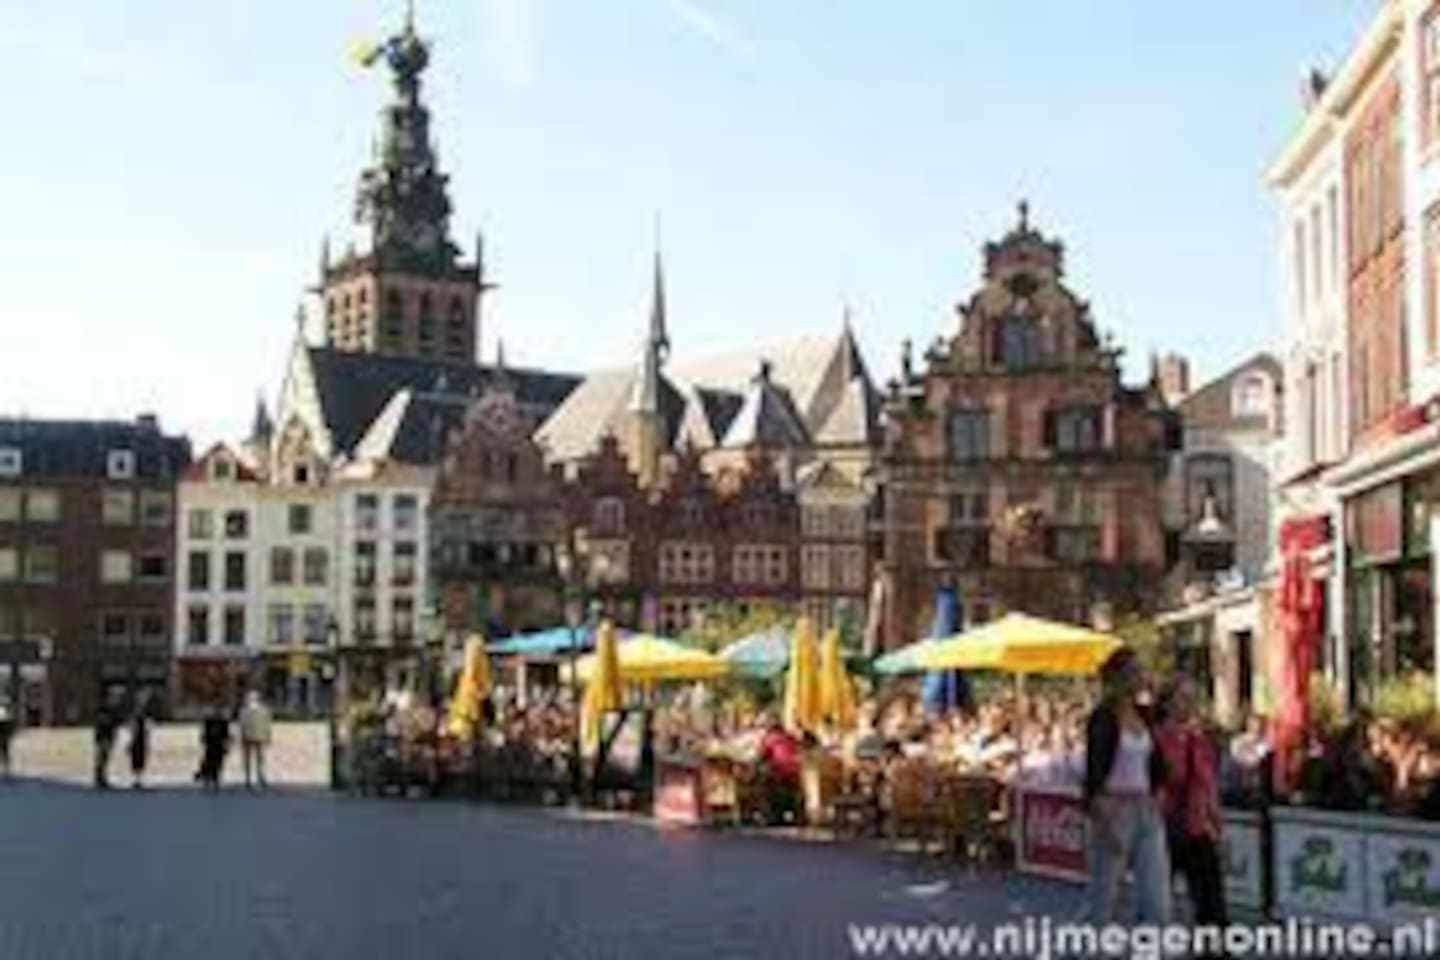 Nijmegen is the oldest city of Holland. The room/house for rent is near Nijmegen, a little town called Elst. Enjoy your stay.